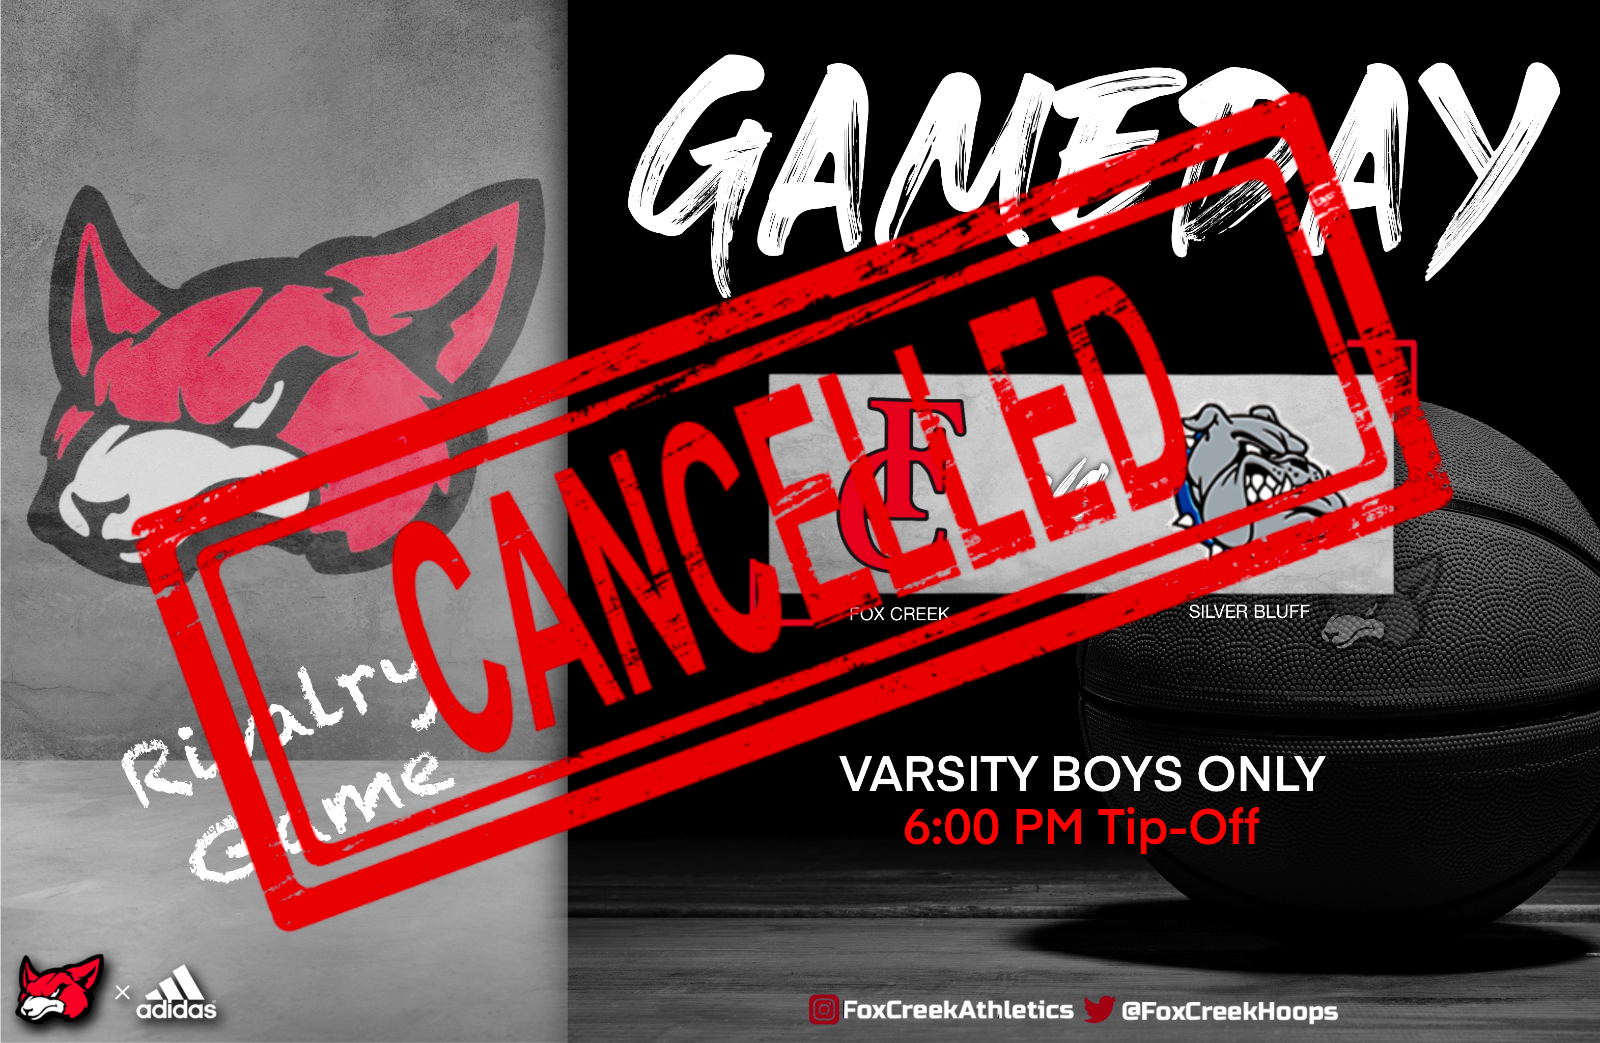 Tonight's Varsity Boys Basketball Game @ Silver Bluff HS CANCELLED